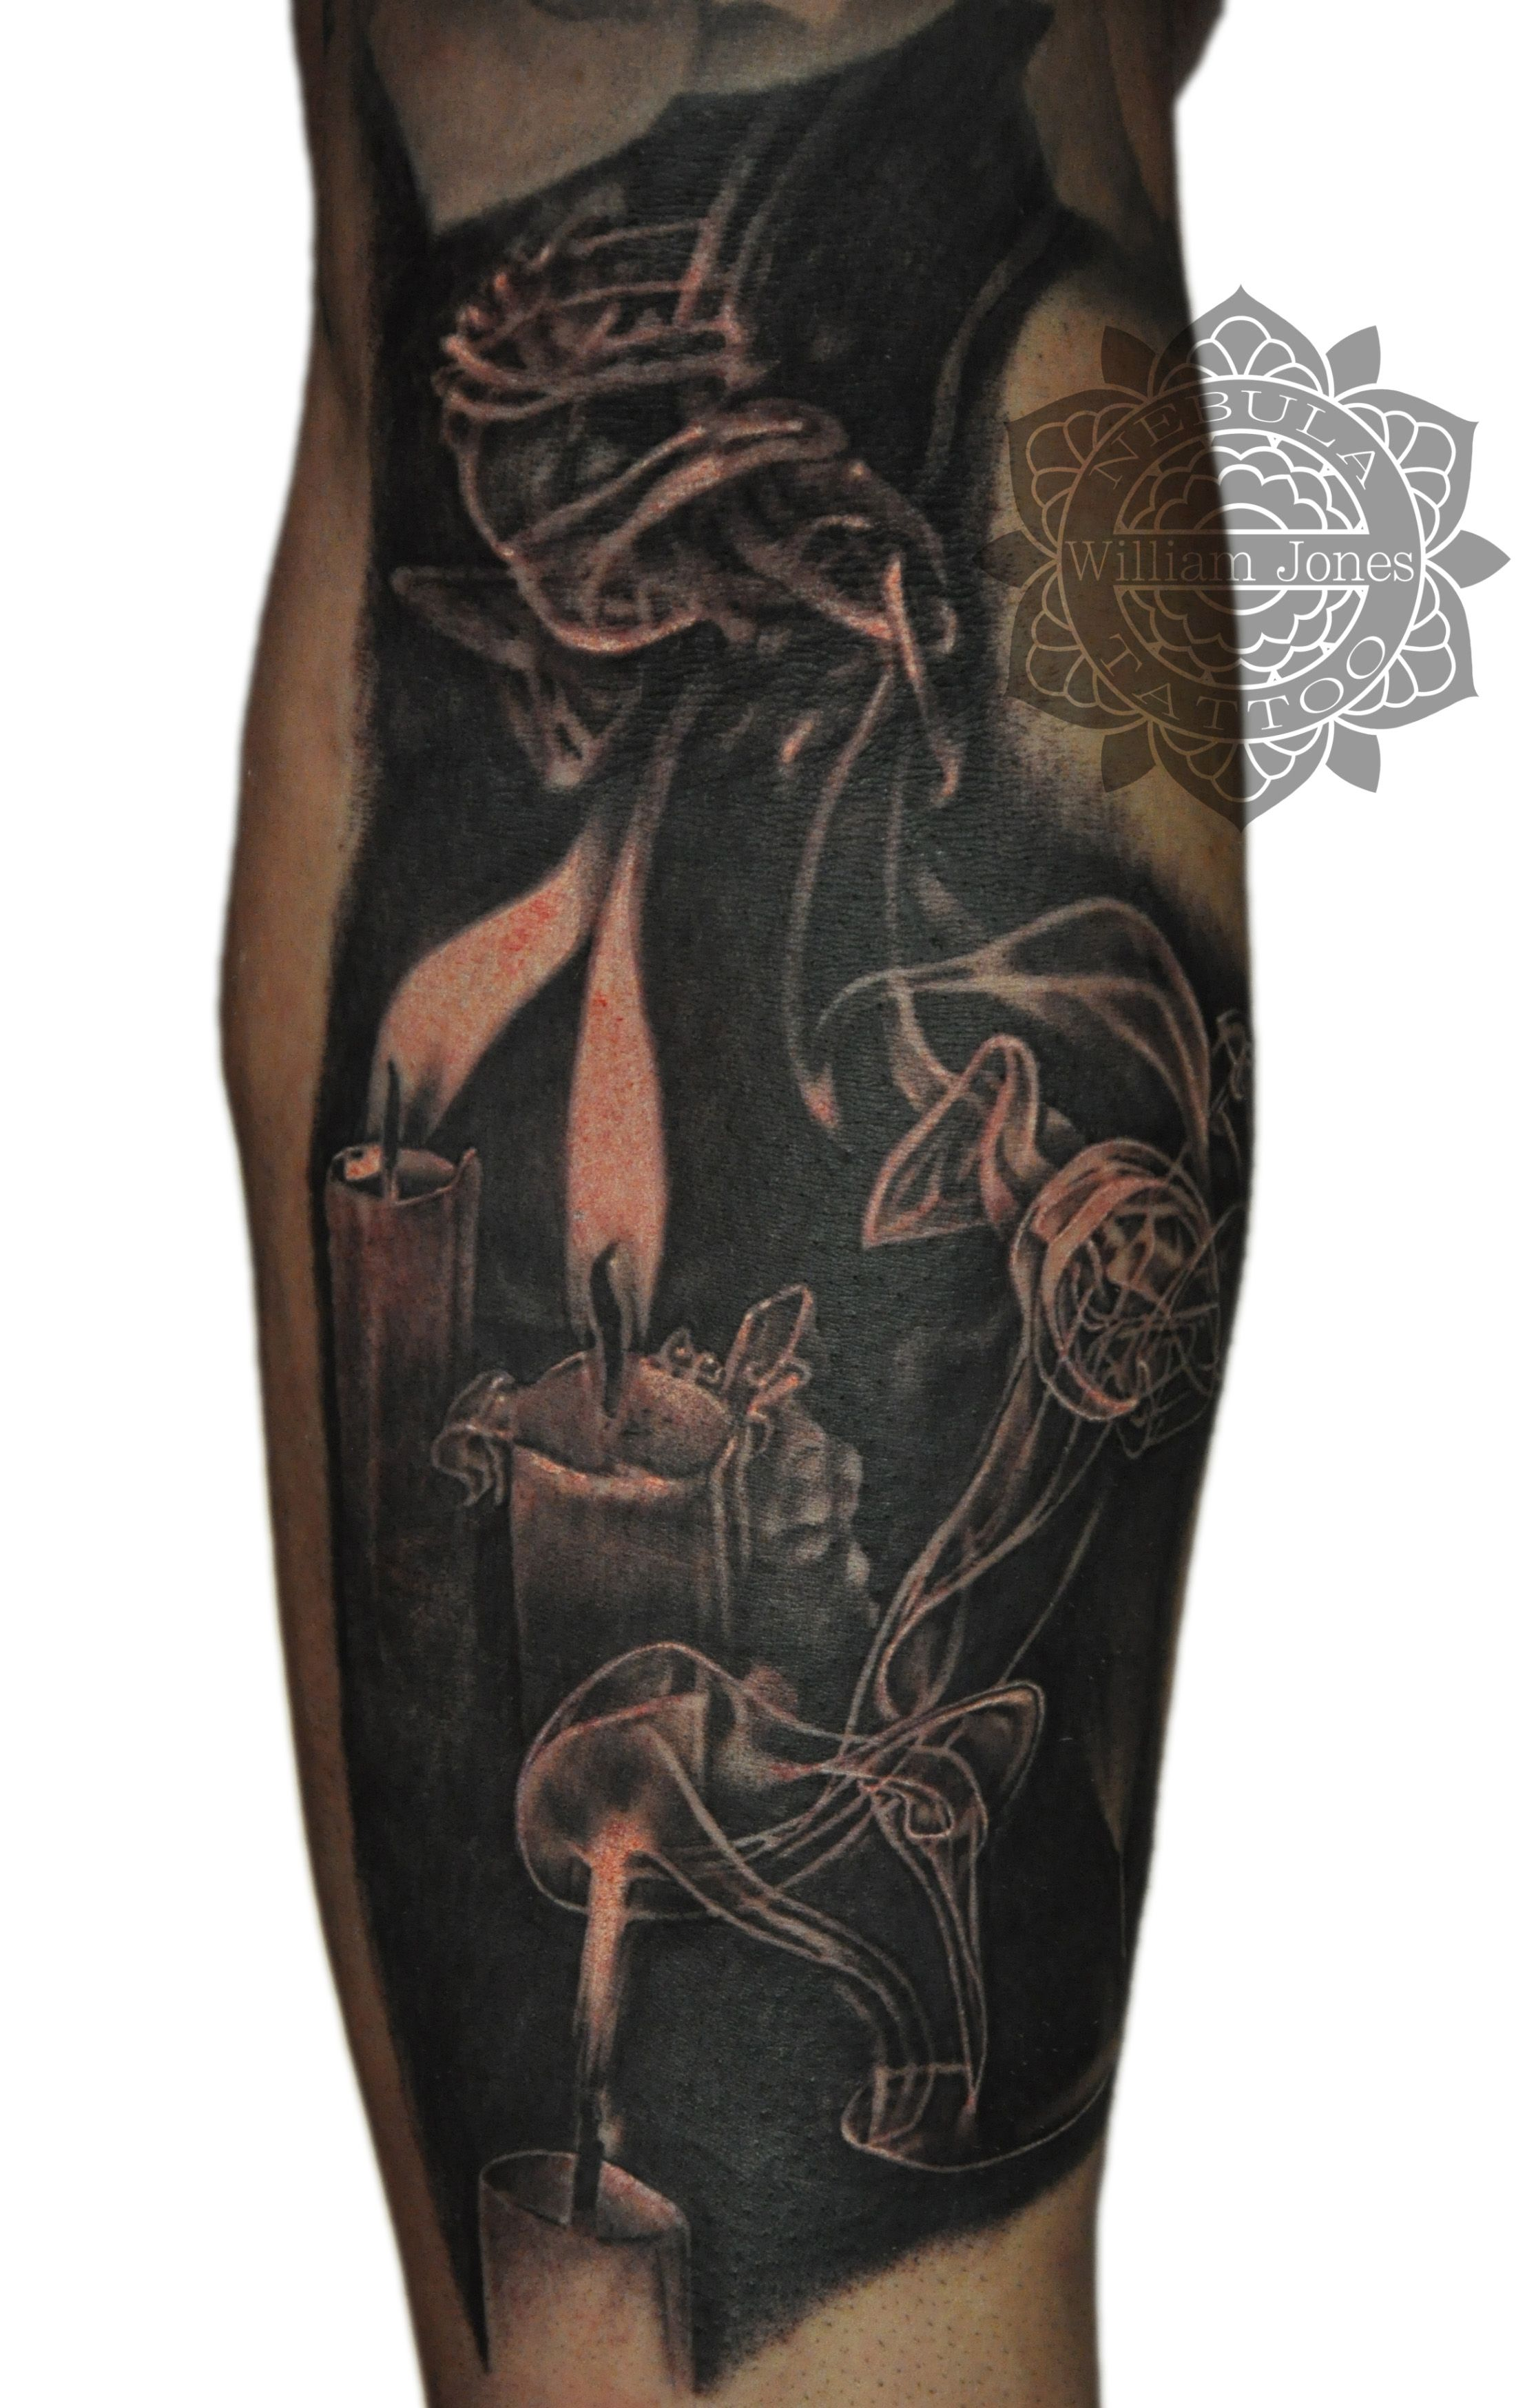 Candle Tattoo Tattoo Ideas Pinterest Candle Tattoo Ideas And Designs